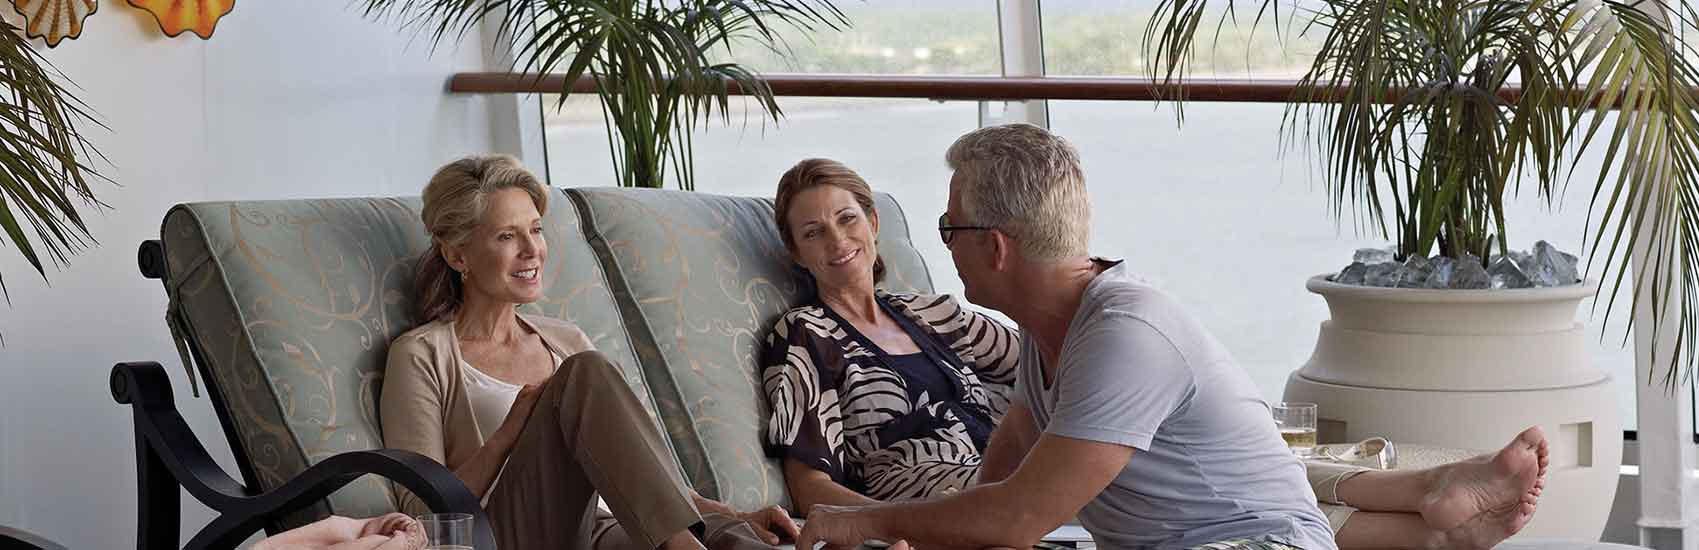 Move Up to Ultimate Value with Oceania Cruises 5